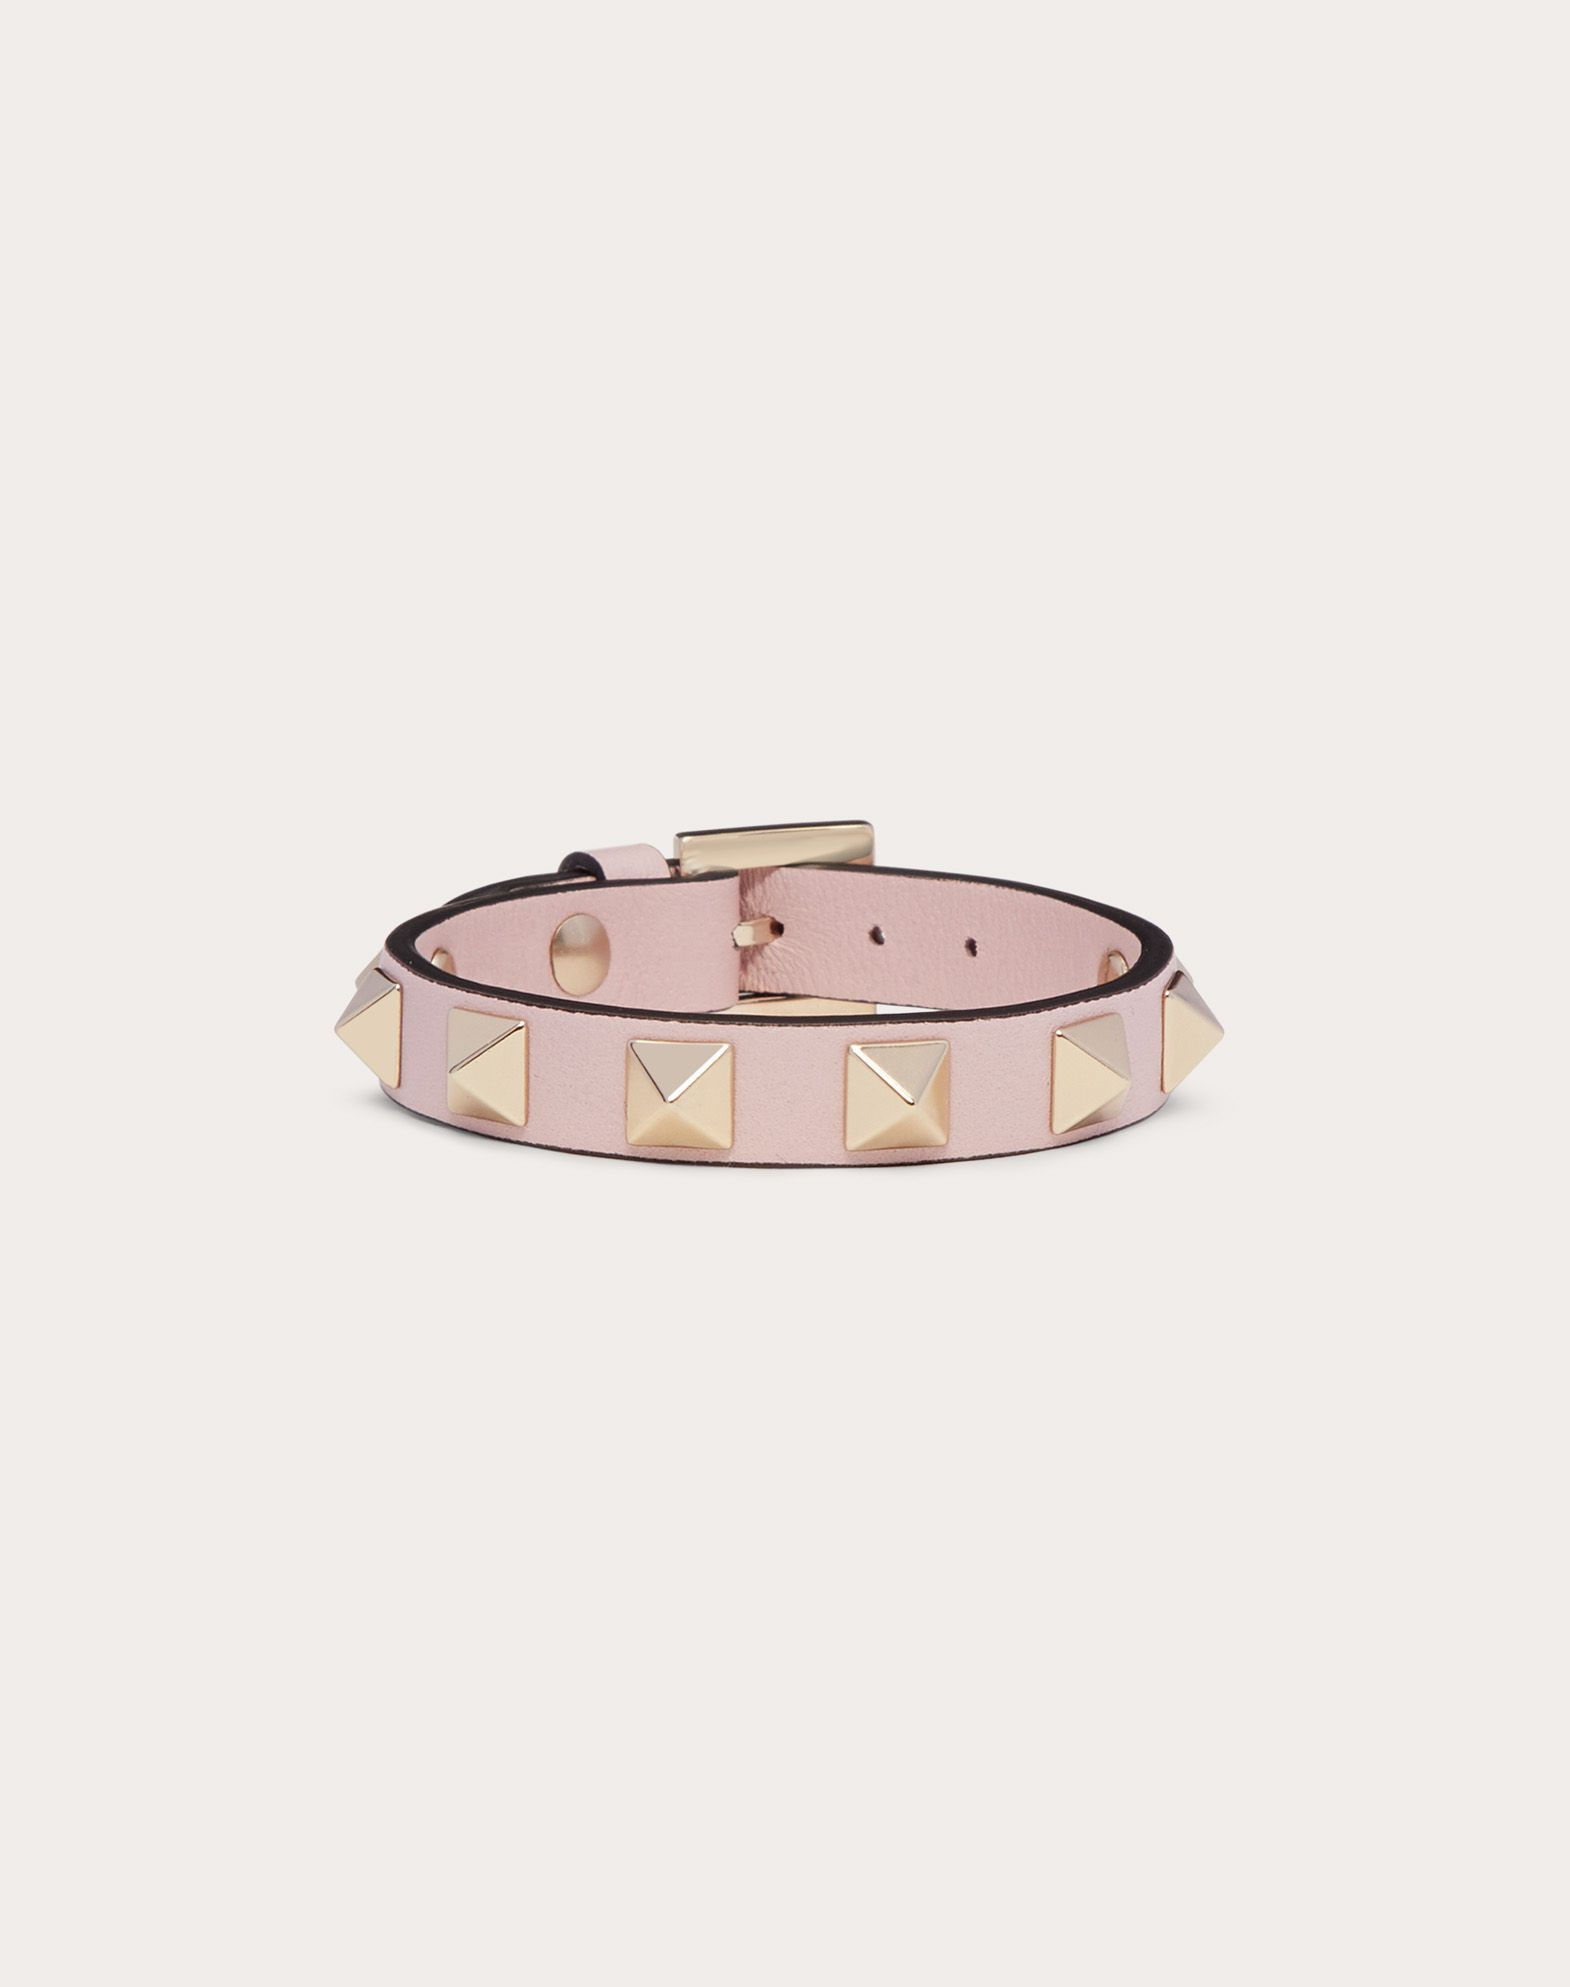 VALENTINO Logo detail Metal Applications Solid colour Buckle  46407114cx